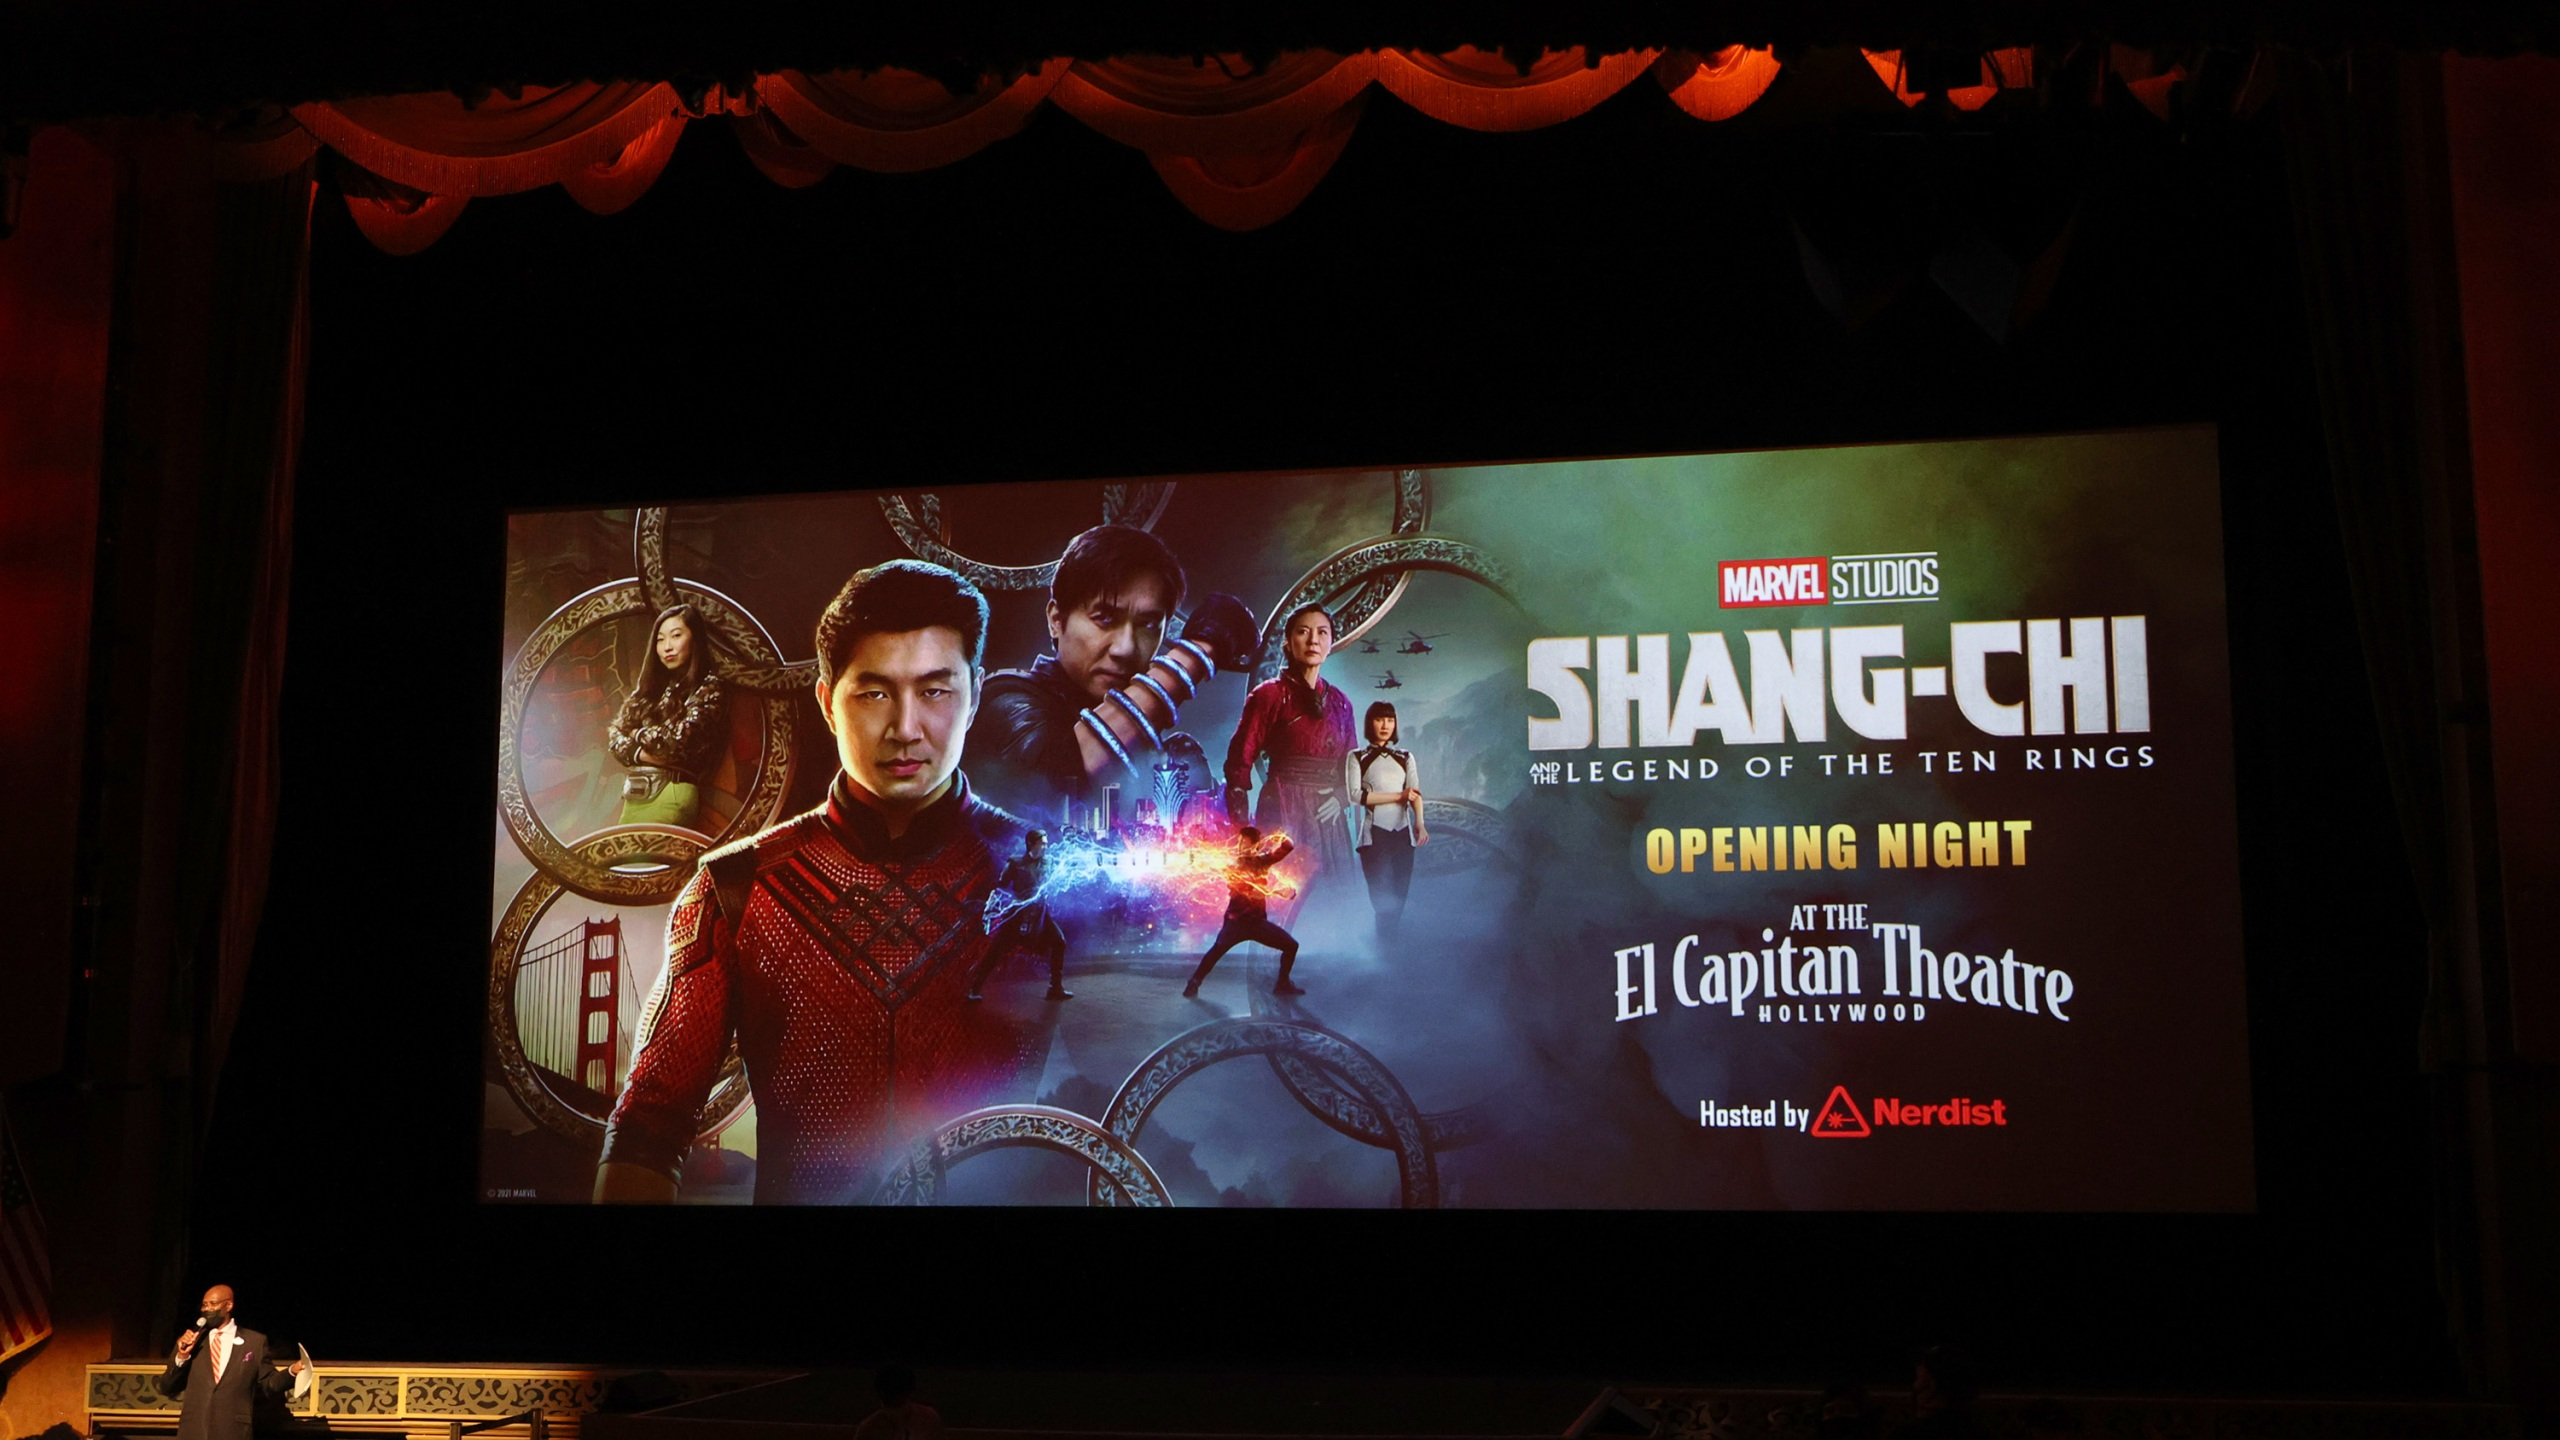 """The theatre screen is shown at a special screening Marvel Studio's """"Shang-Chi and The Legend of The Ten Rings"""" at El Capitan Theatre in Hollywood on Sept. 2, 2021. (Kevin Winter/Getty Images)"""